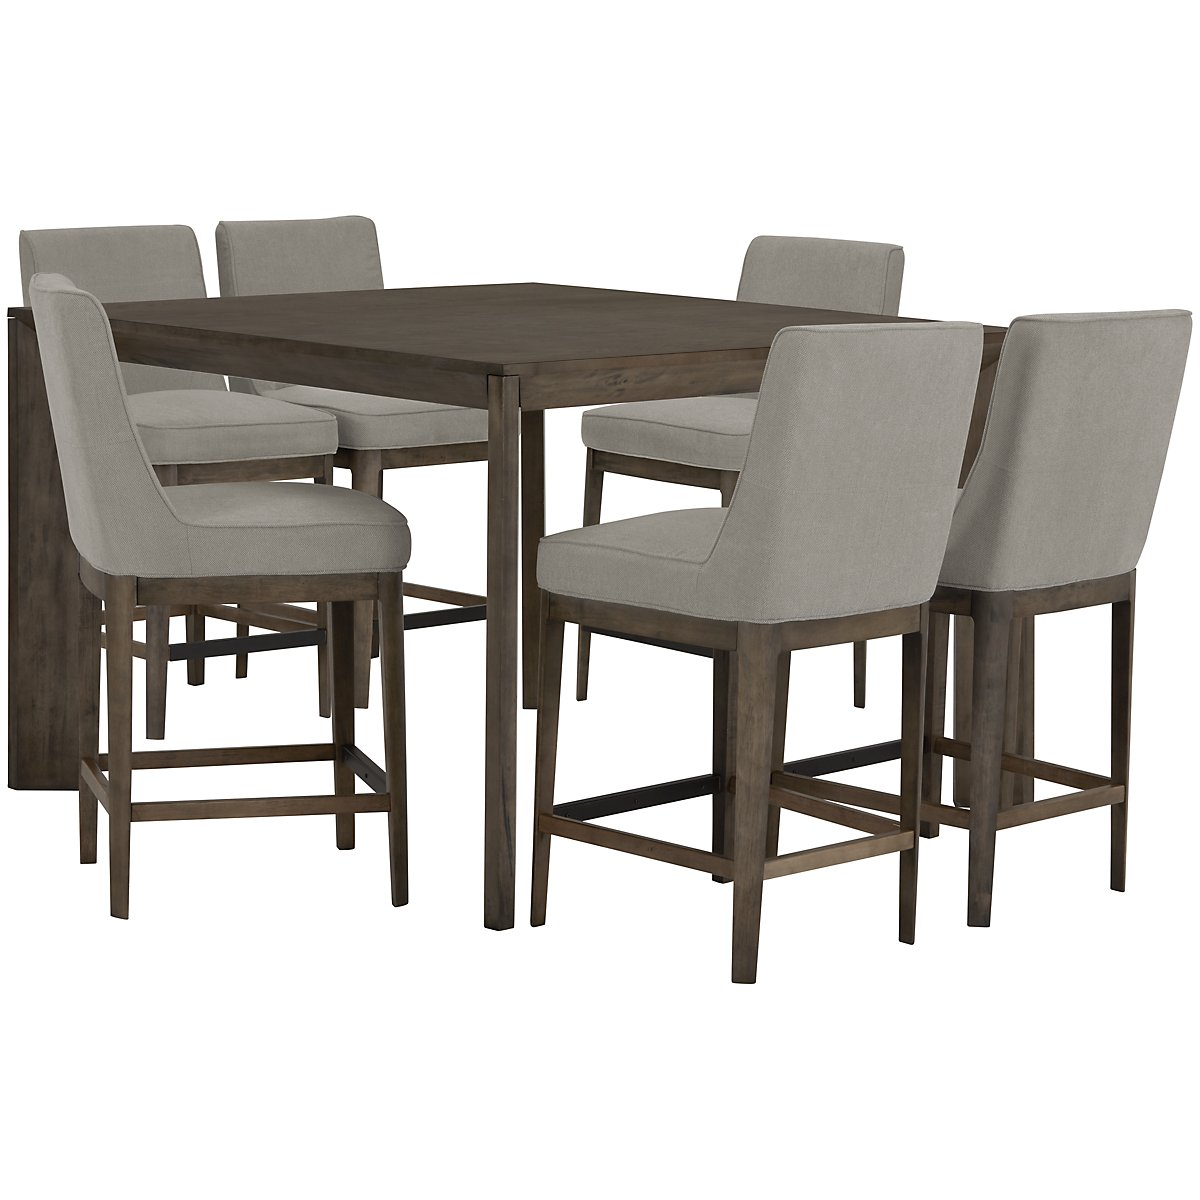 City furniture rylan gray high dining table High dining table